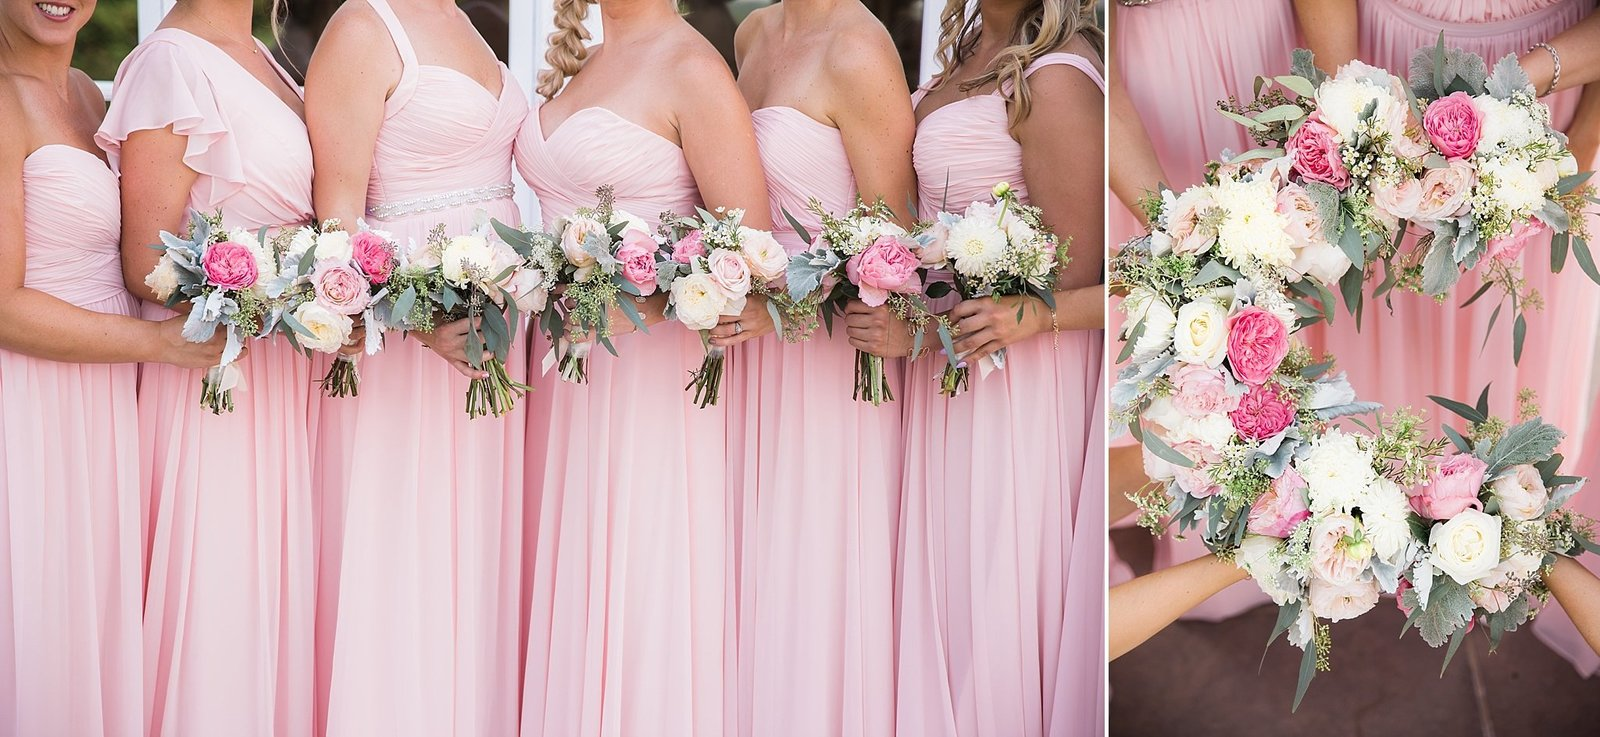 M Harris Studios_Trump National Golf Club Wedding_pink and white bouquets